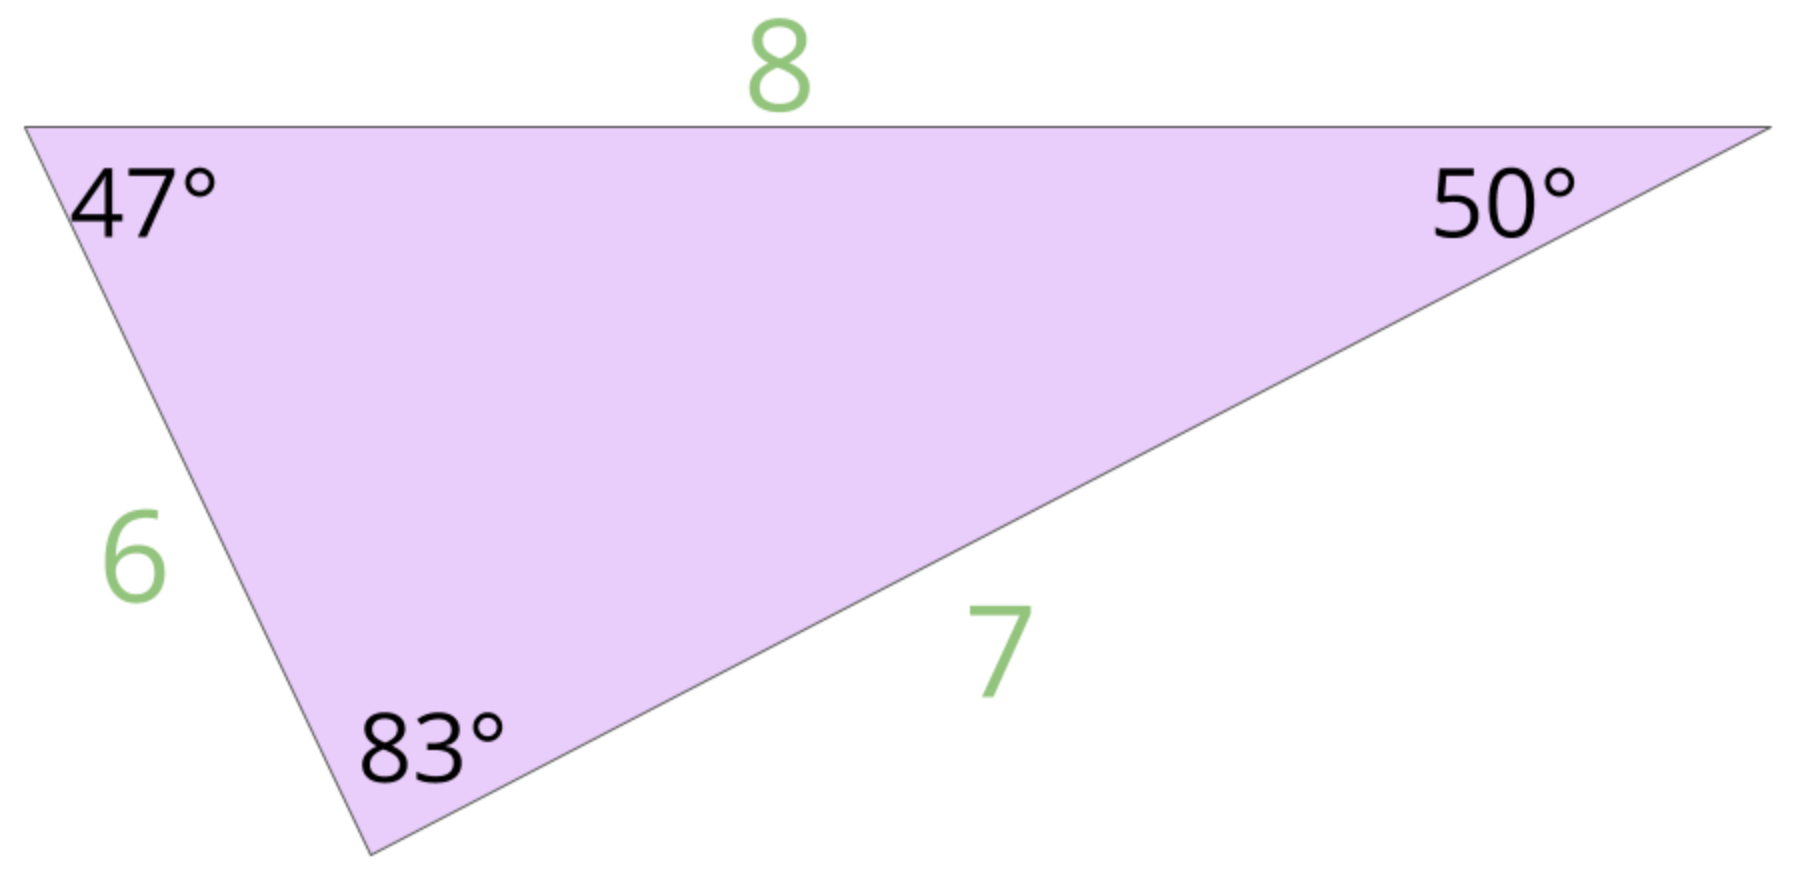 none of the sides of this triangle are equal